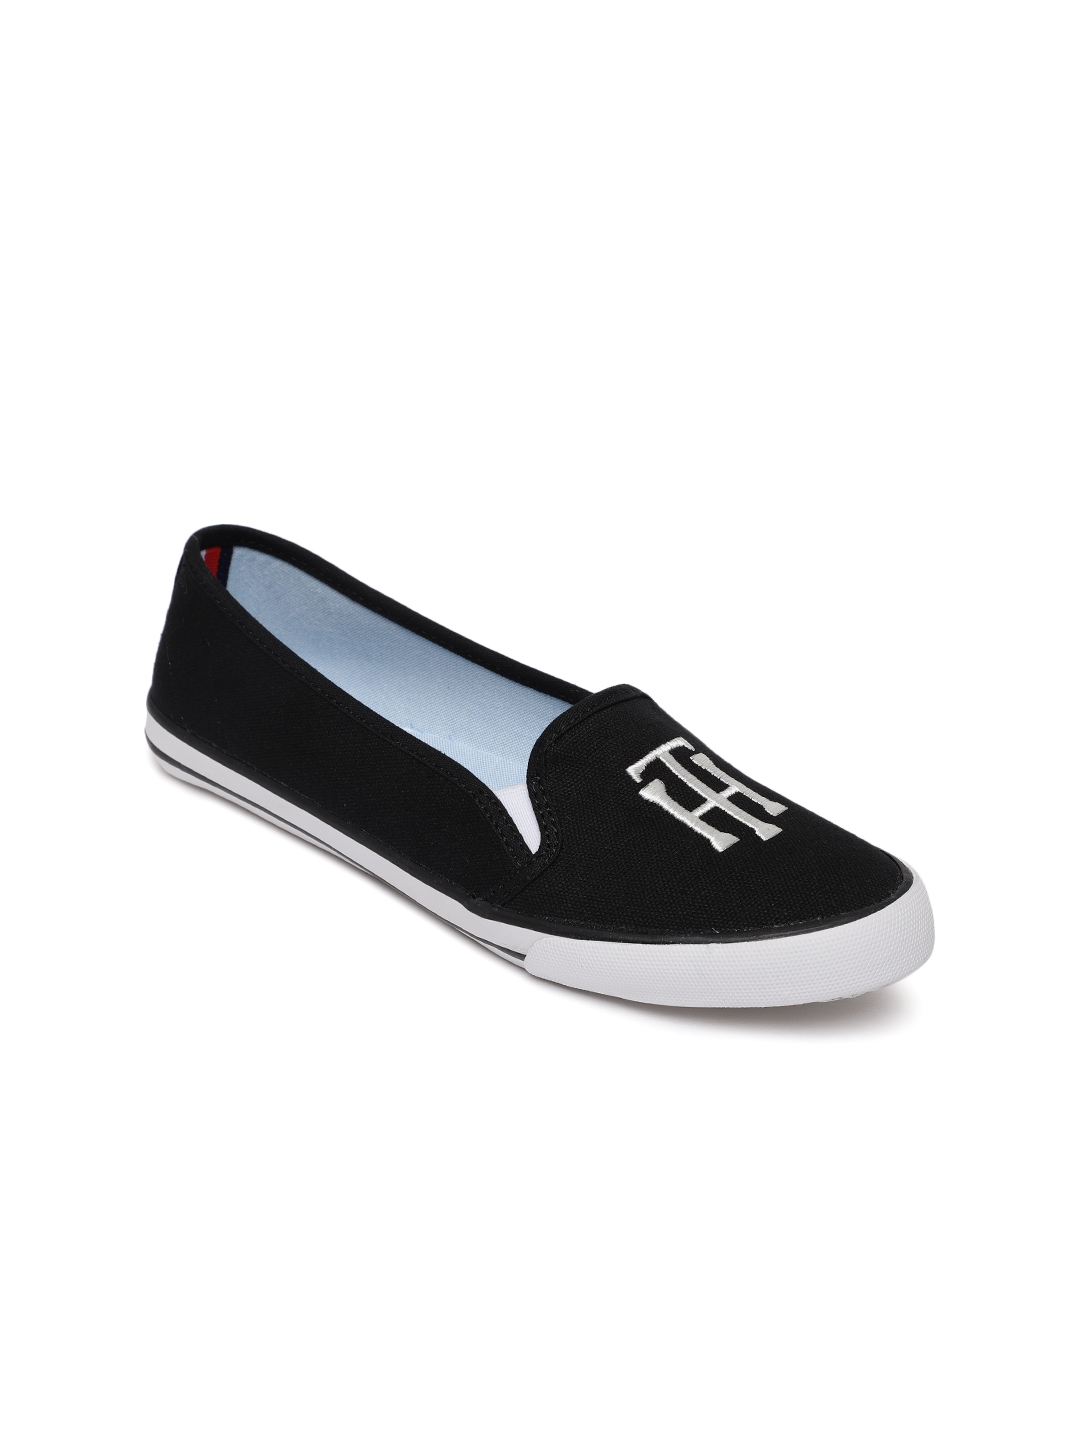 0b9e30719 Buy Tommy Hilfiger Women Black Blossia Slip On Sneakers - Casual ...